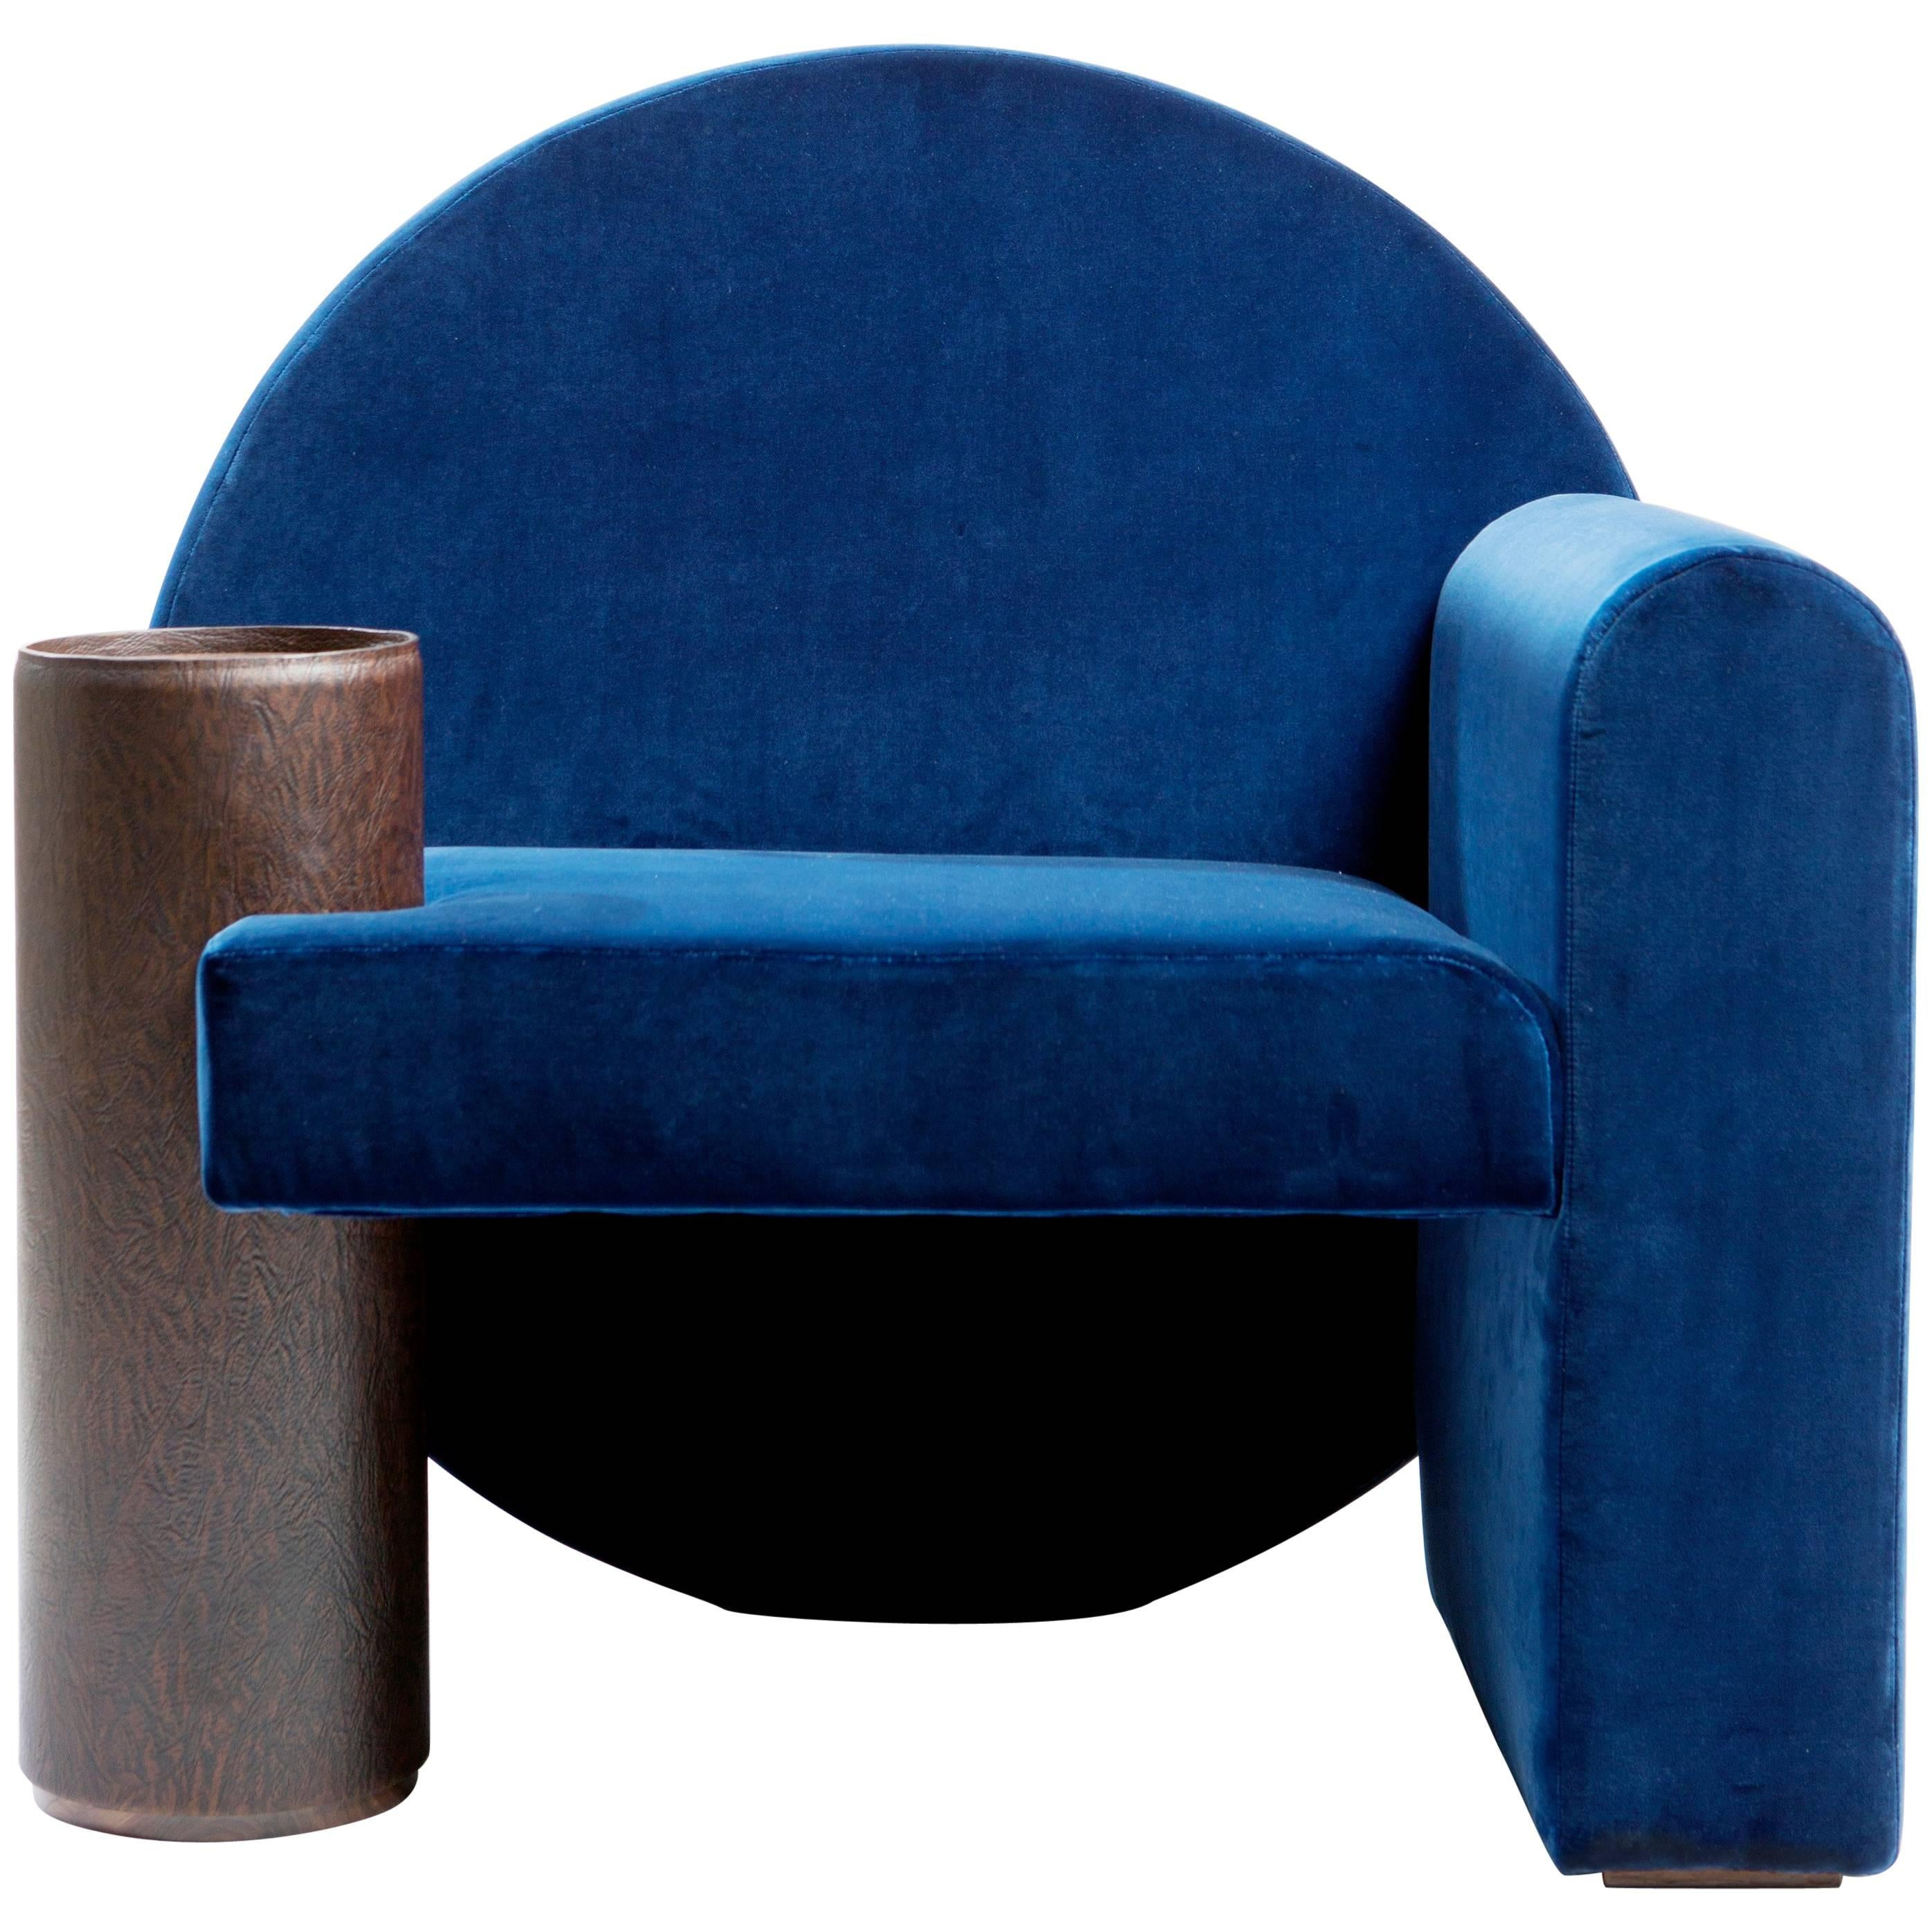 U0027Valsusau0027 Armchair In Blue Velvet And Leather By POOL For Sale